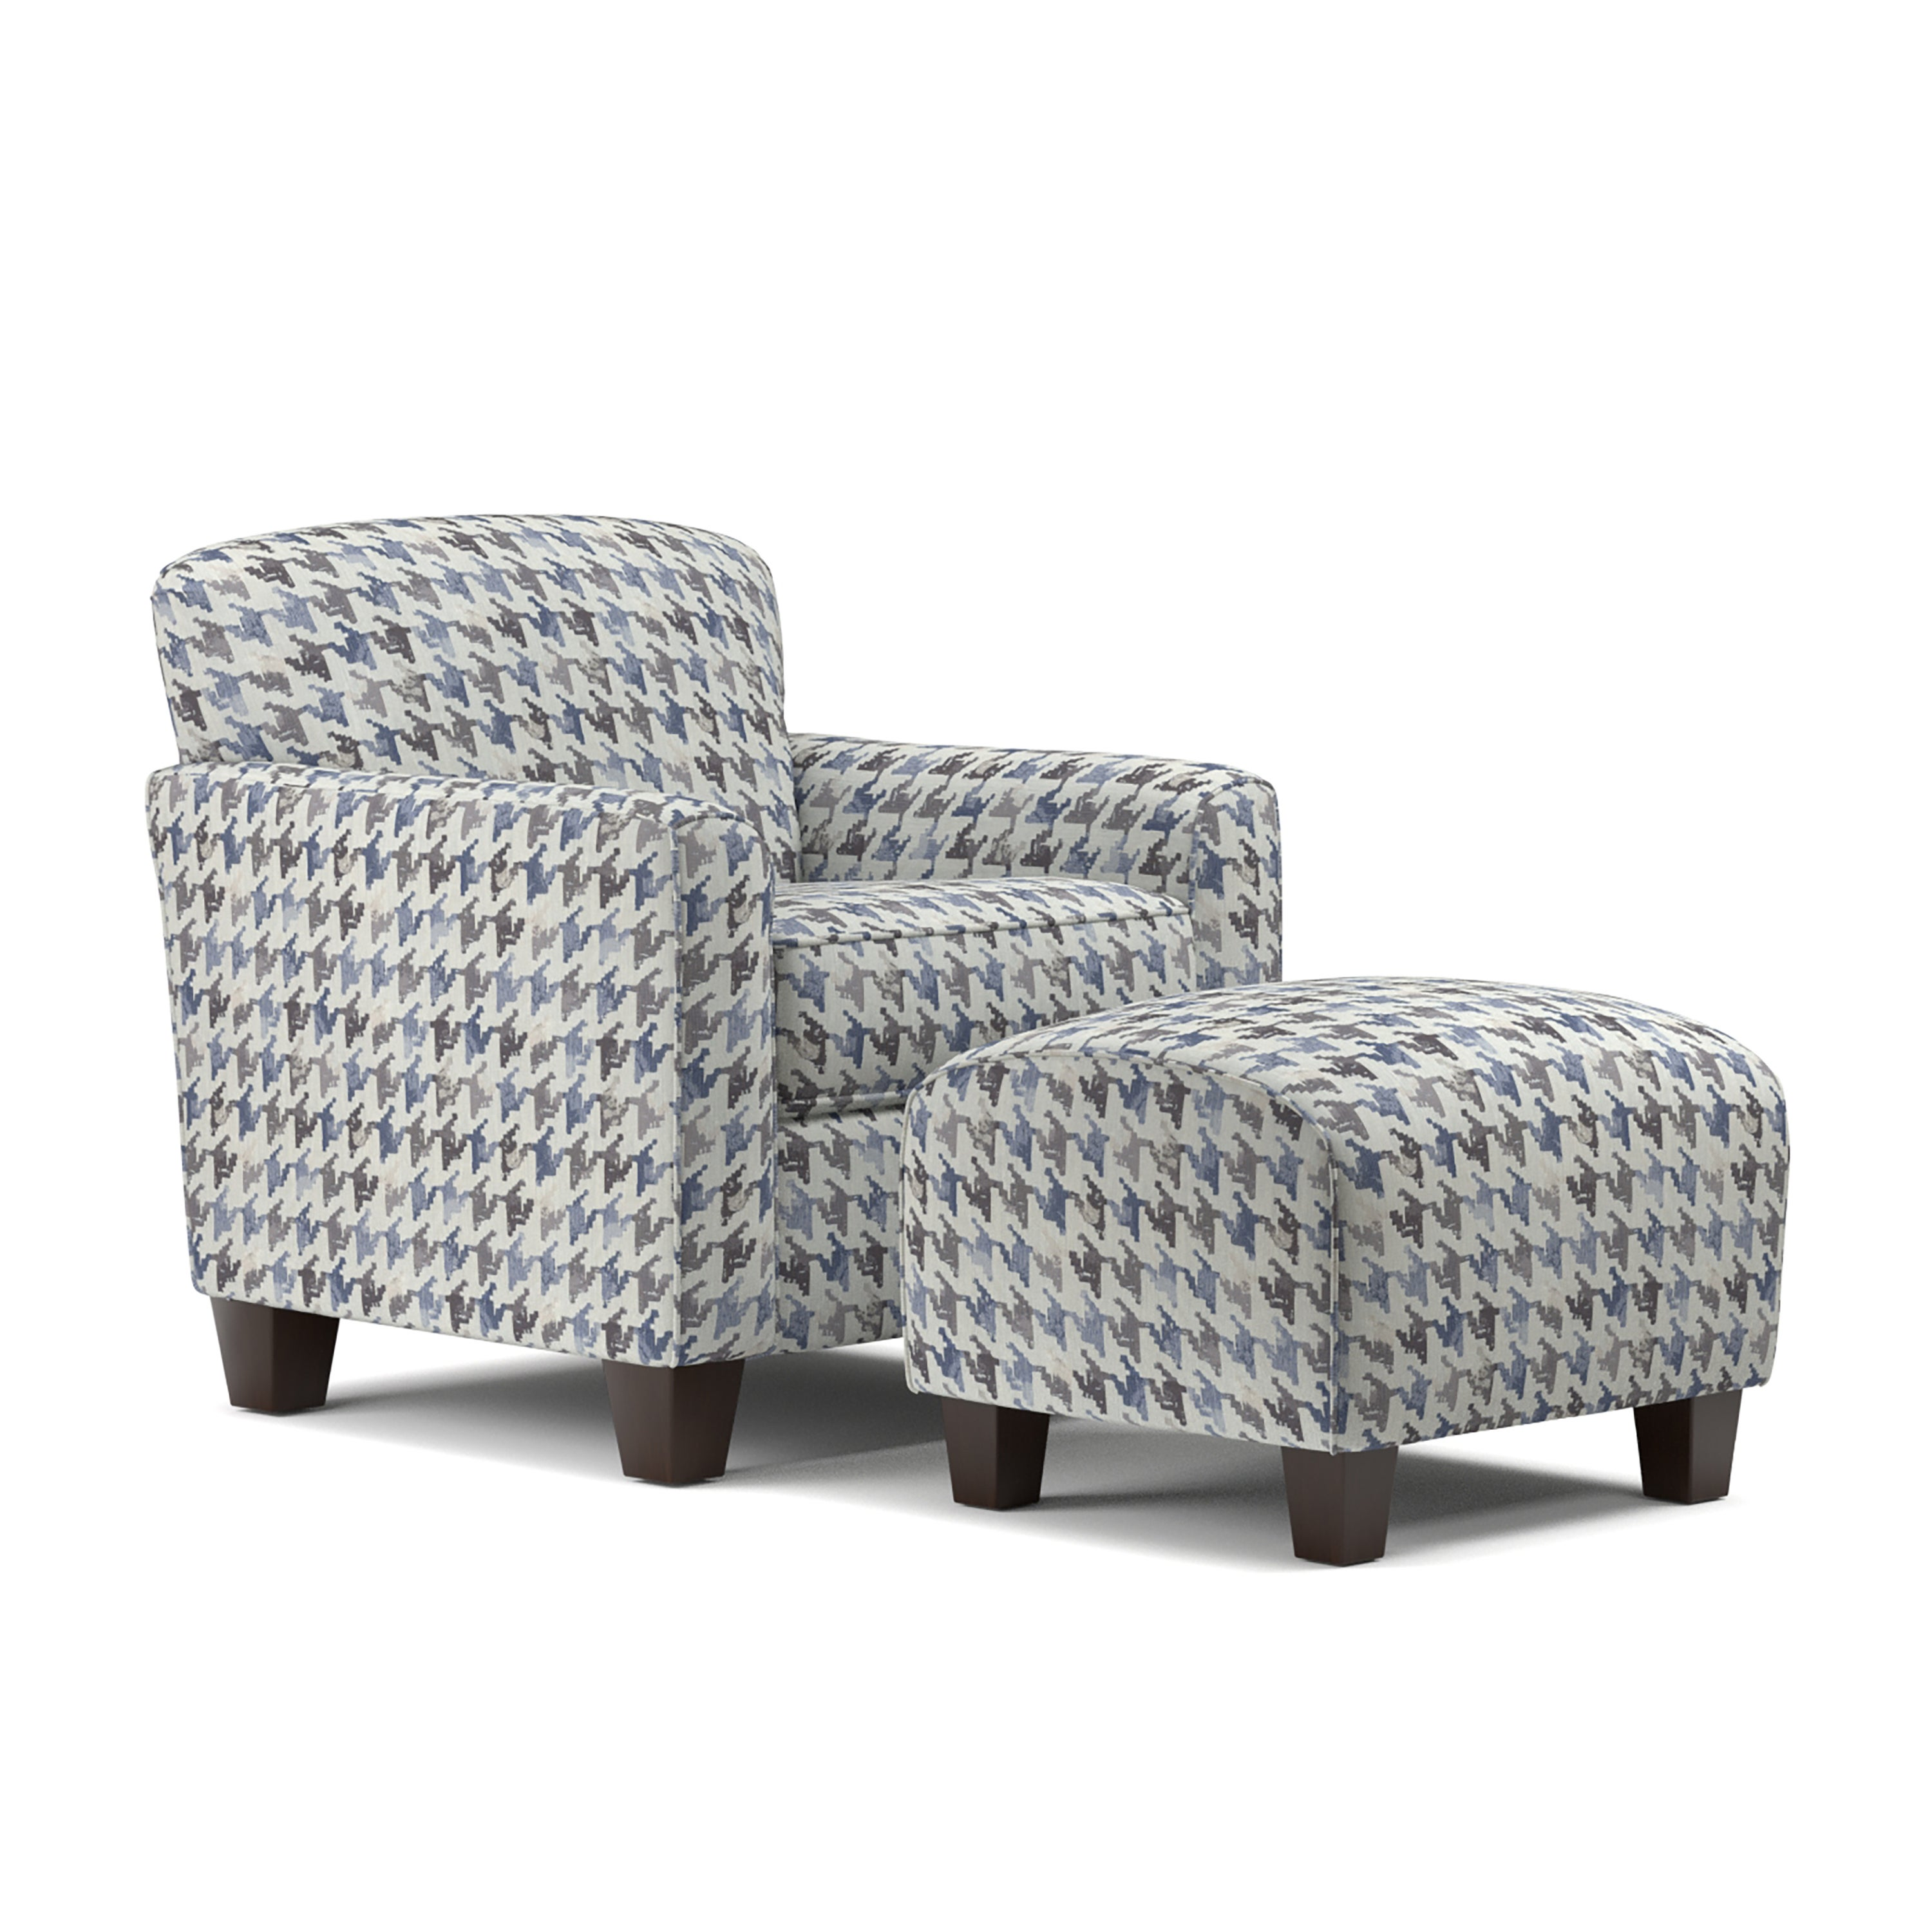 upholstered chairs mocha room cafe living signature with set ottoman contemporary legs sofa overstock ottomans and darcy chair design tapered by warehouse blue